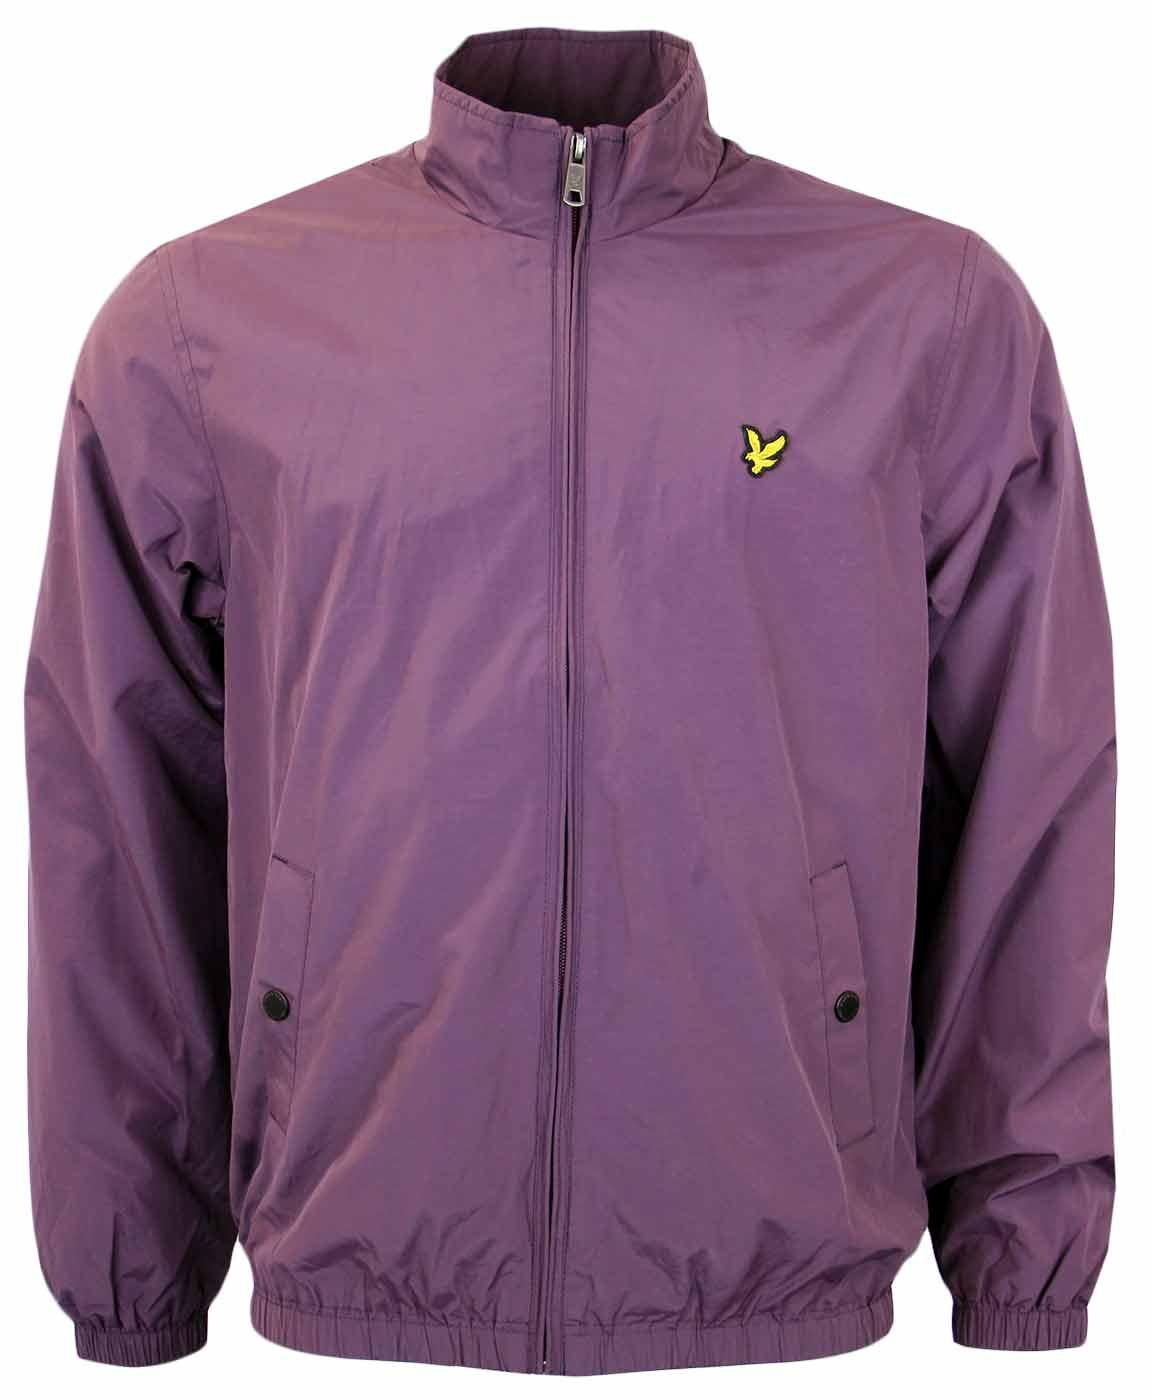 LYLE & SCOTT Retro Funnel Neck Zip Through Jacket